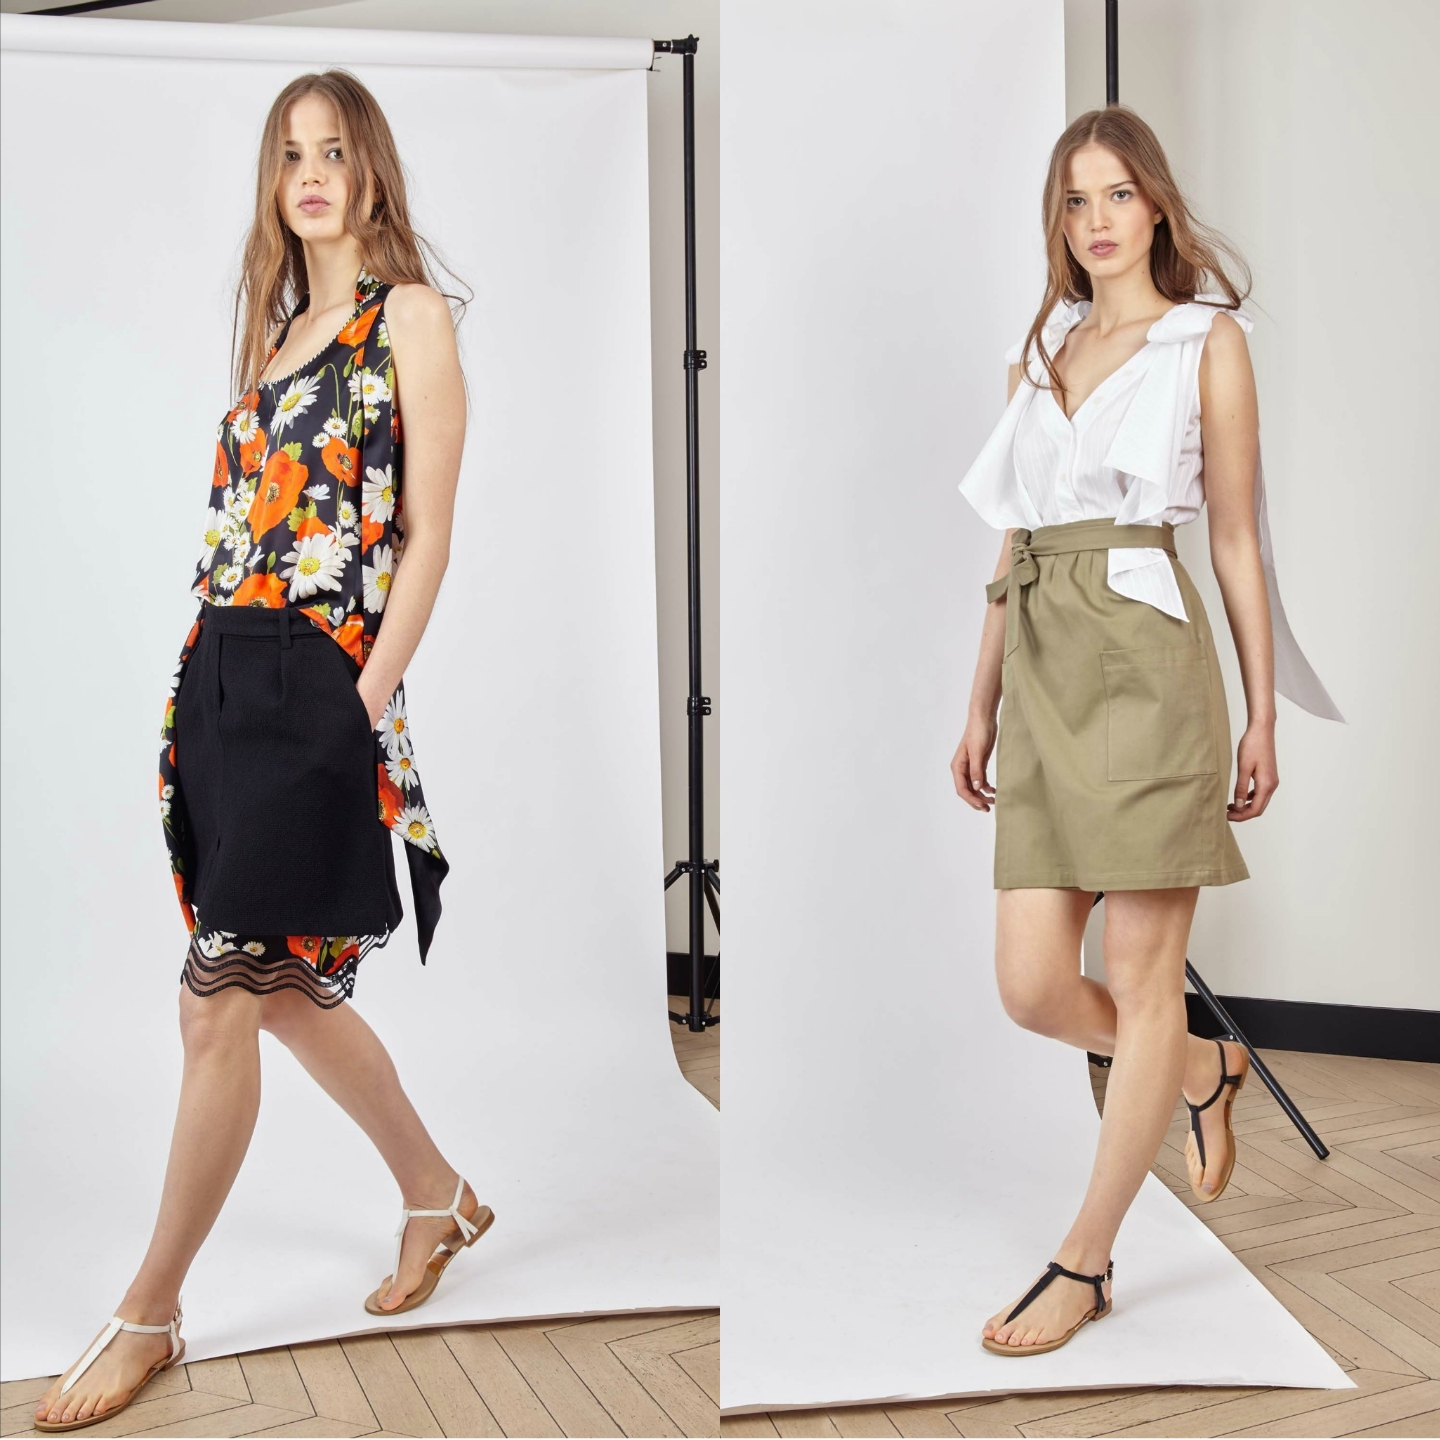 Eniwhere Fashion - Resort Collection - Primavera 2017 - Alexis Mabille